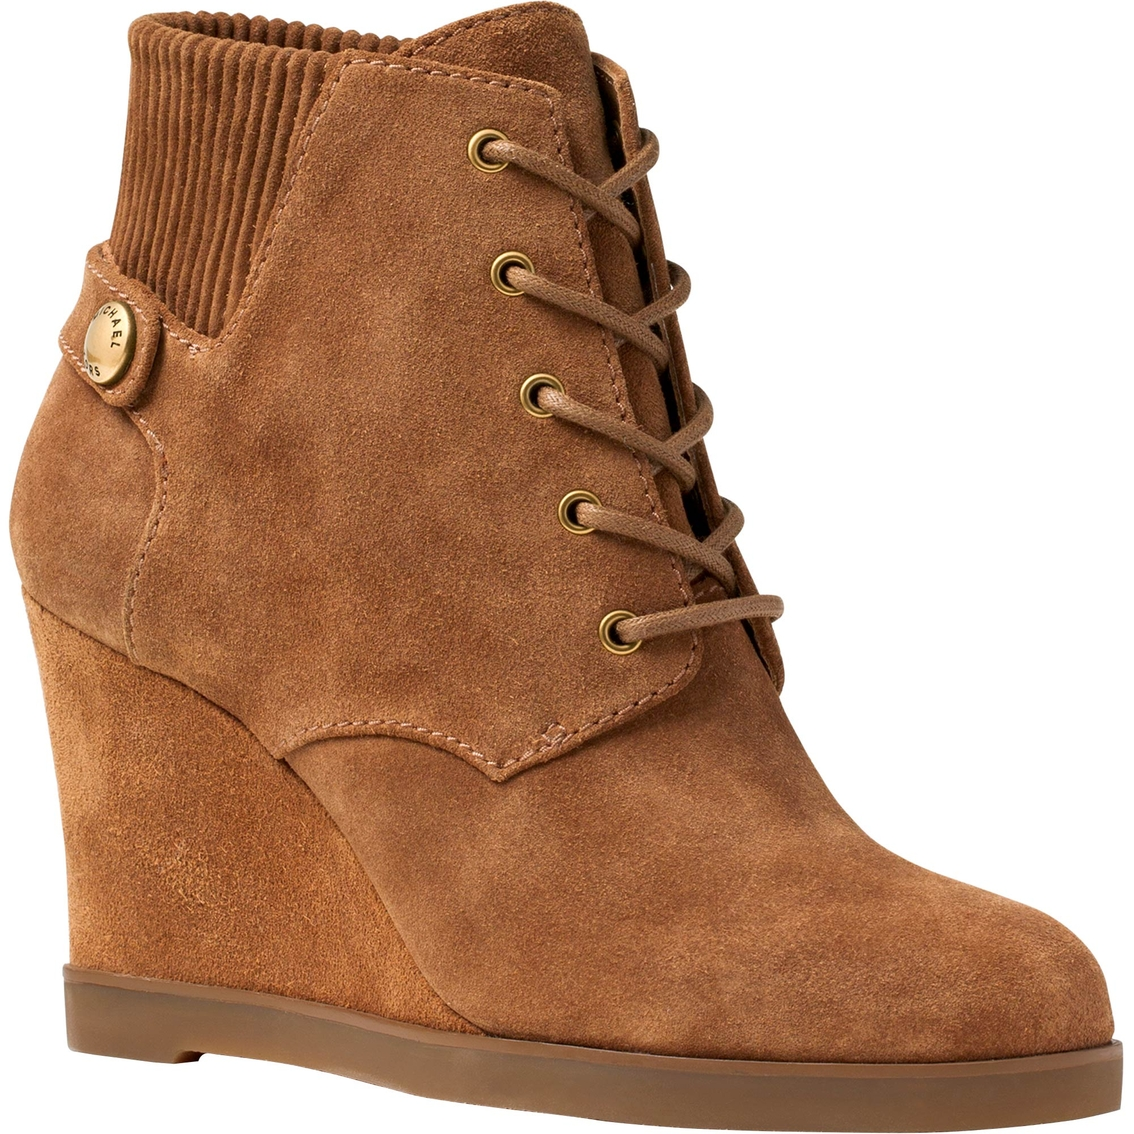 michael kors carrigan lace up suede wedge boots booties